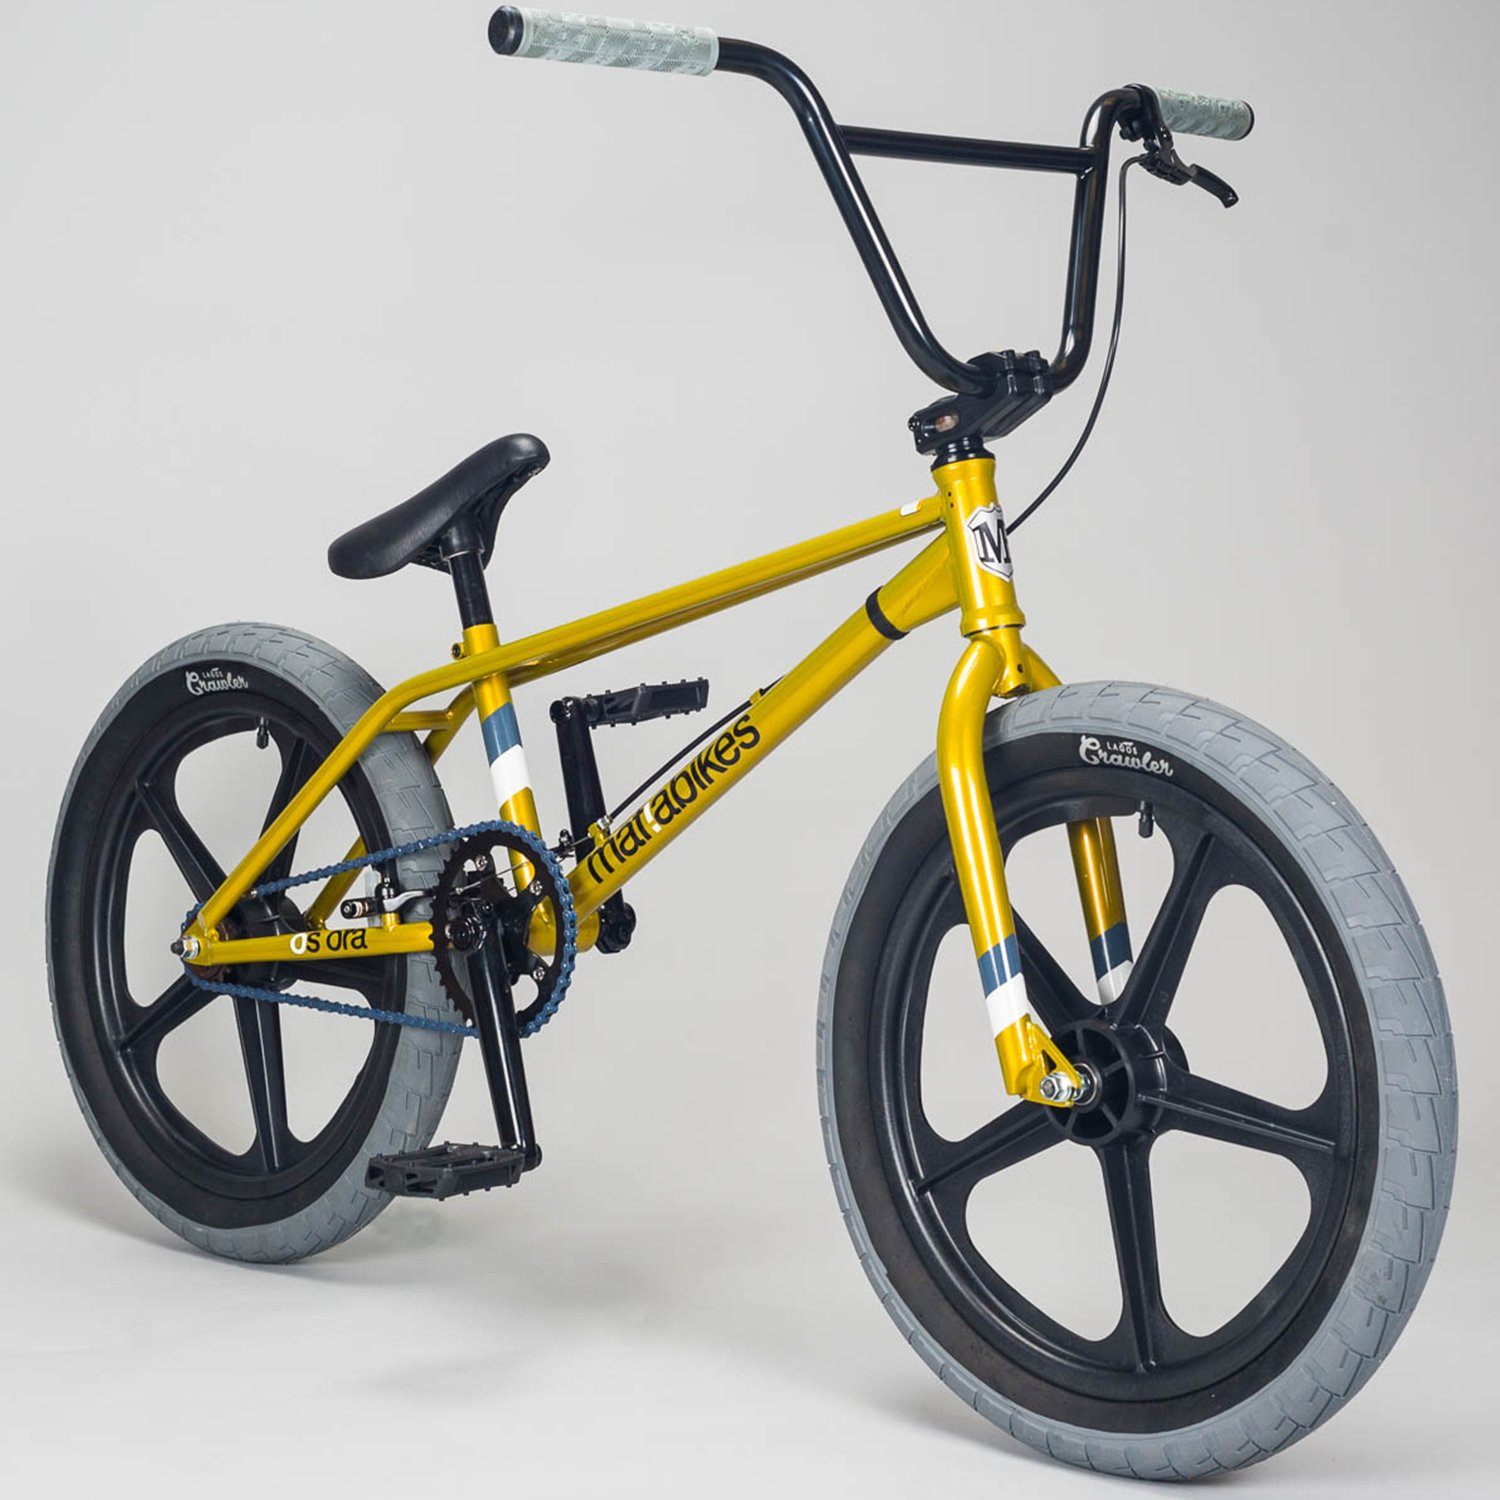 Mafiabikes Old School OS Ora 20インチBMX Bike B078ST5HW5